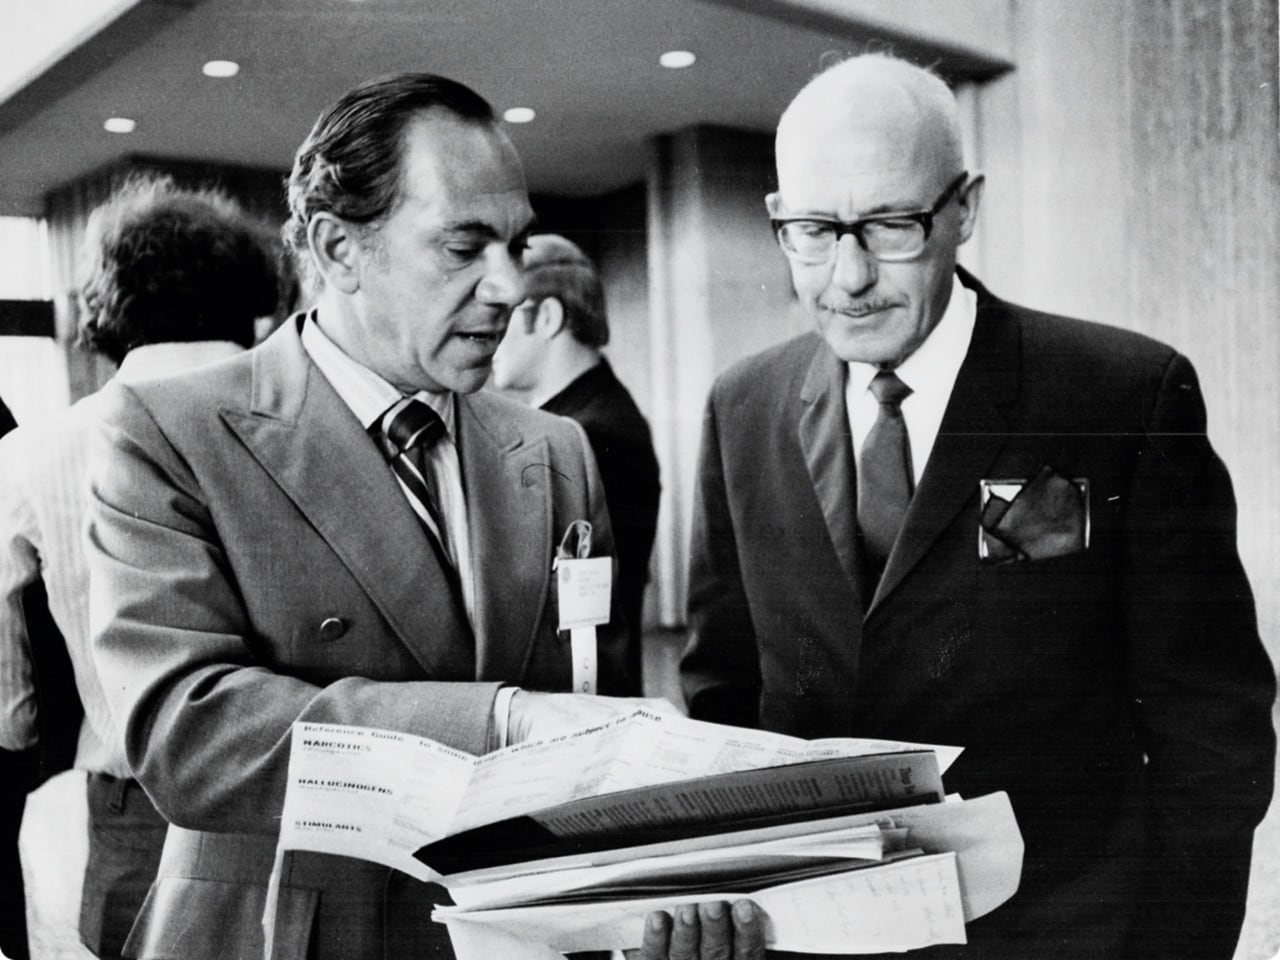 Black and white old photo of 2 men in suits